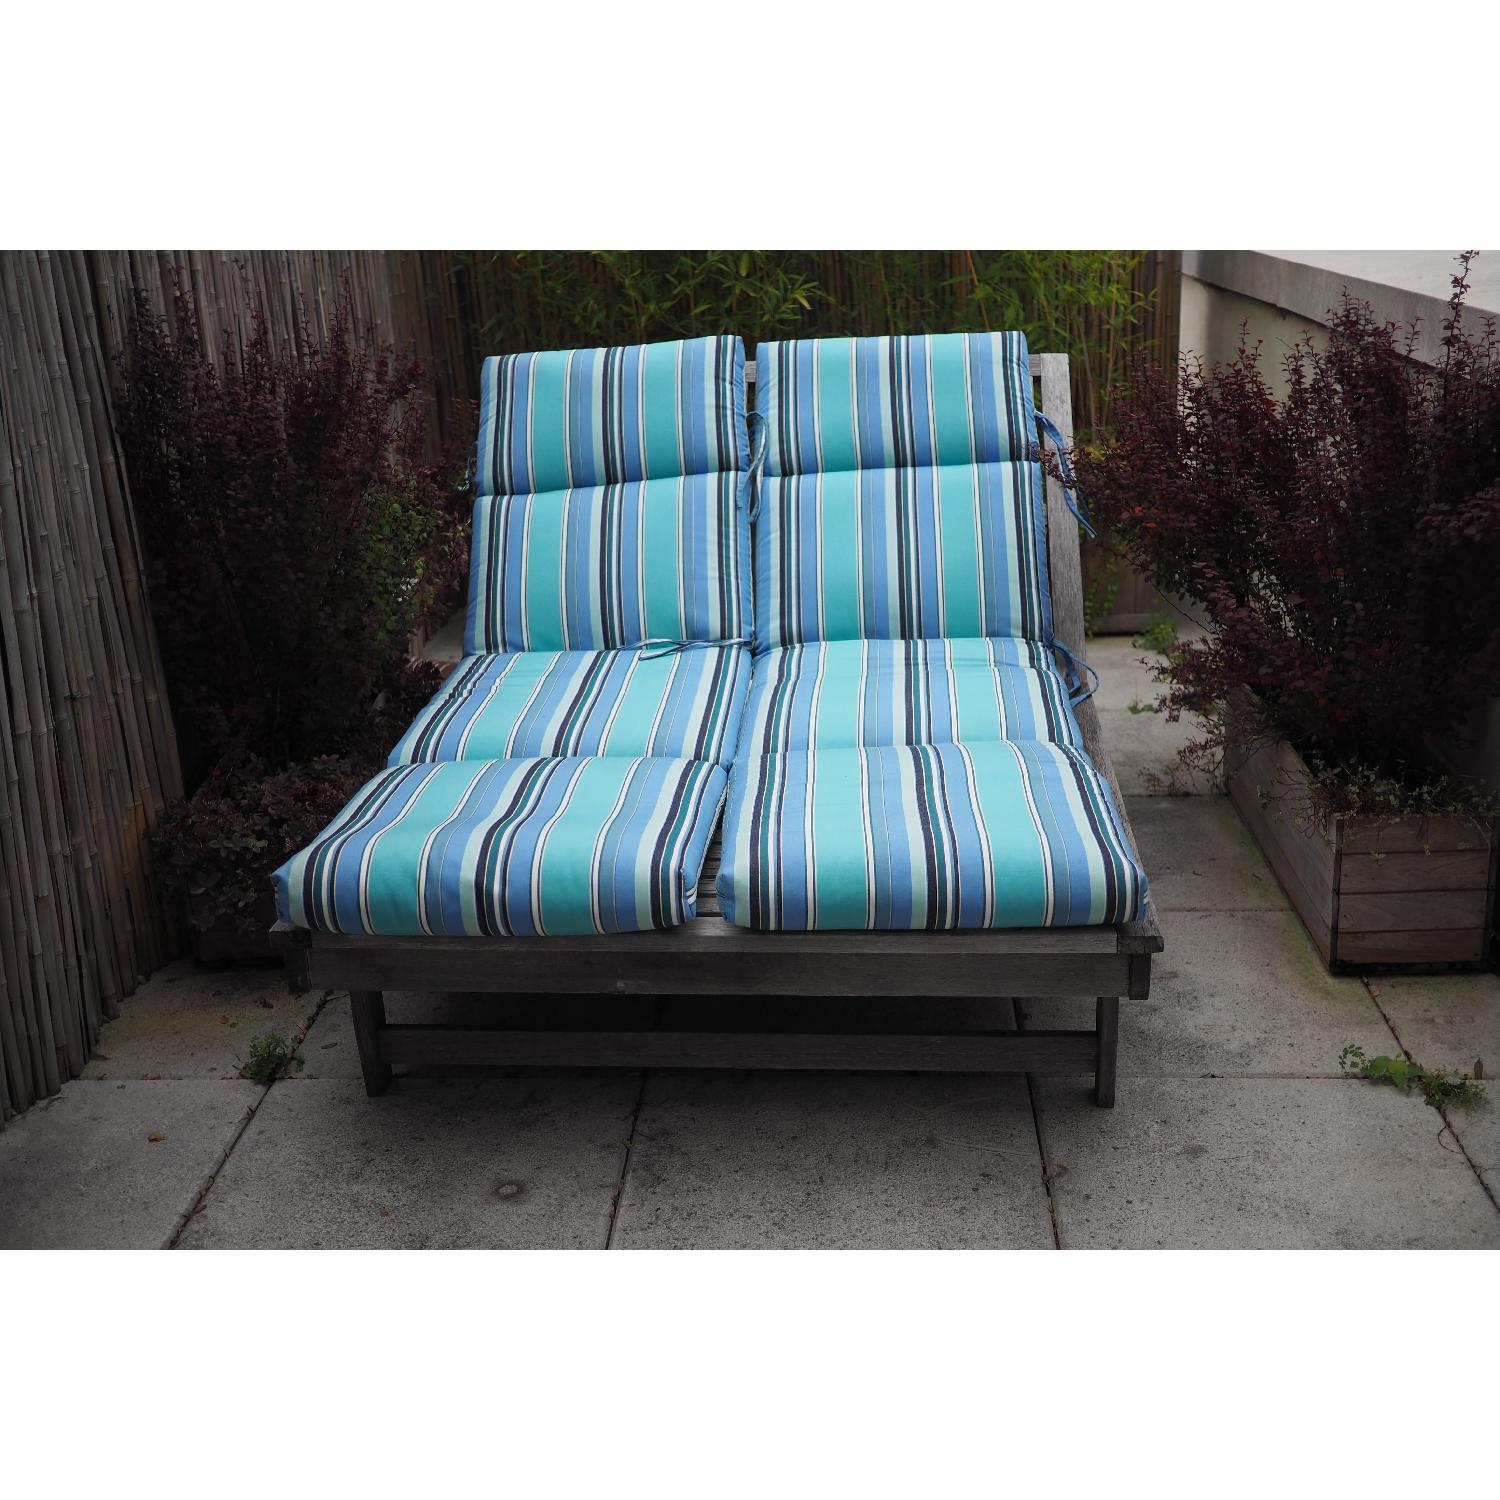 Outdoor Teak Double Chaise Lounge Chair-0